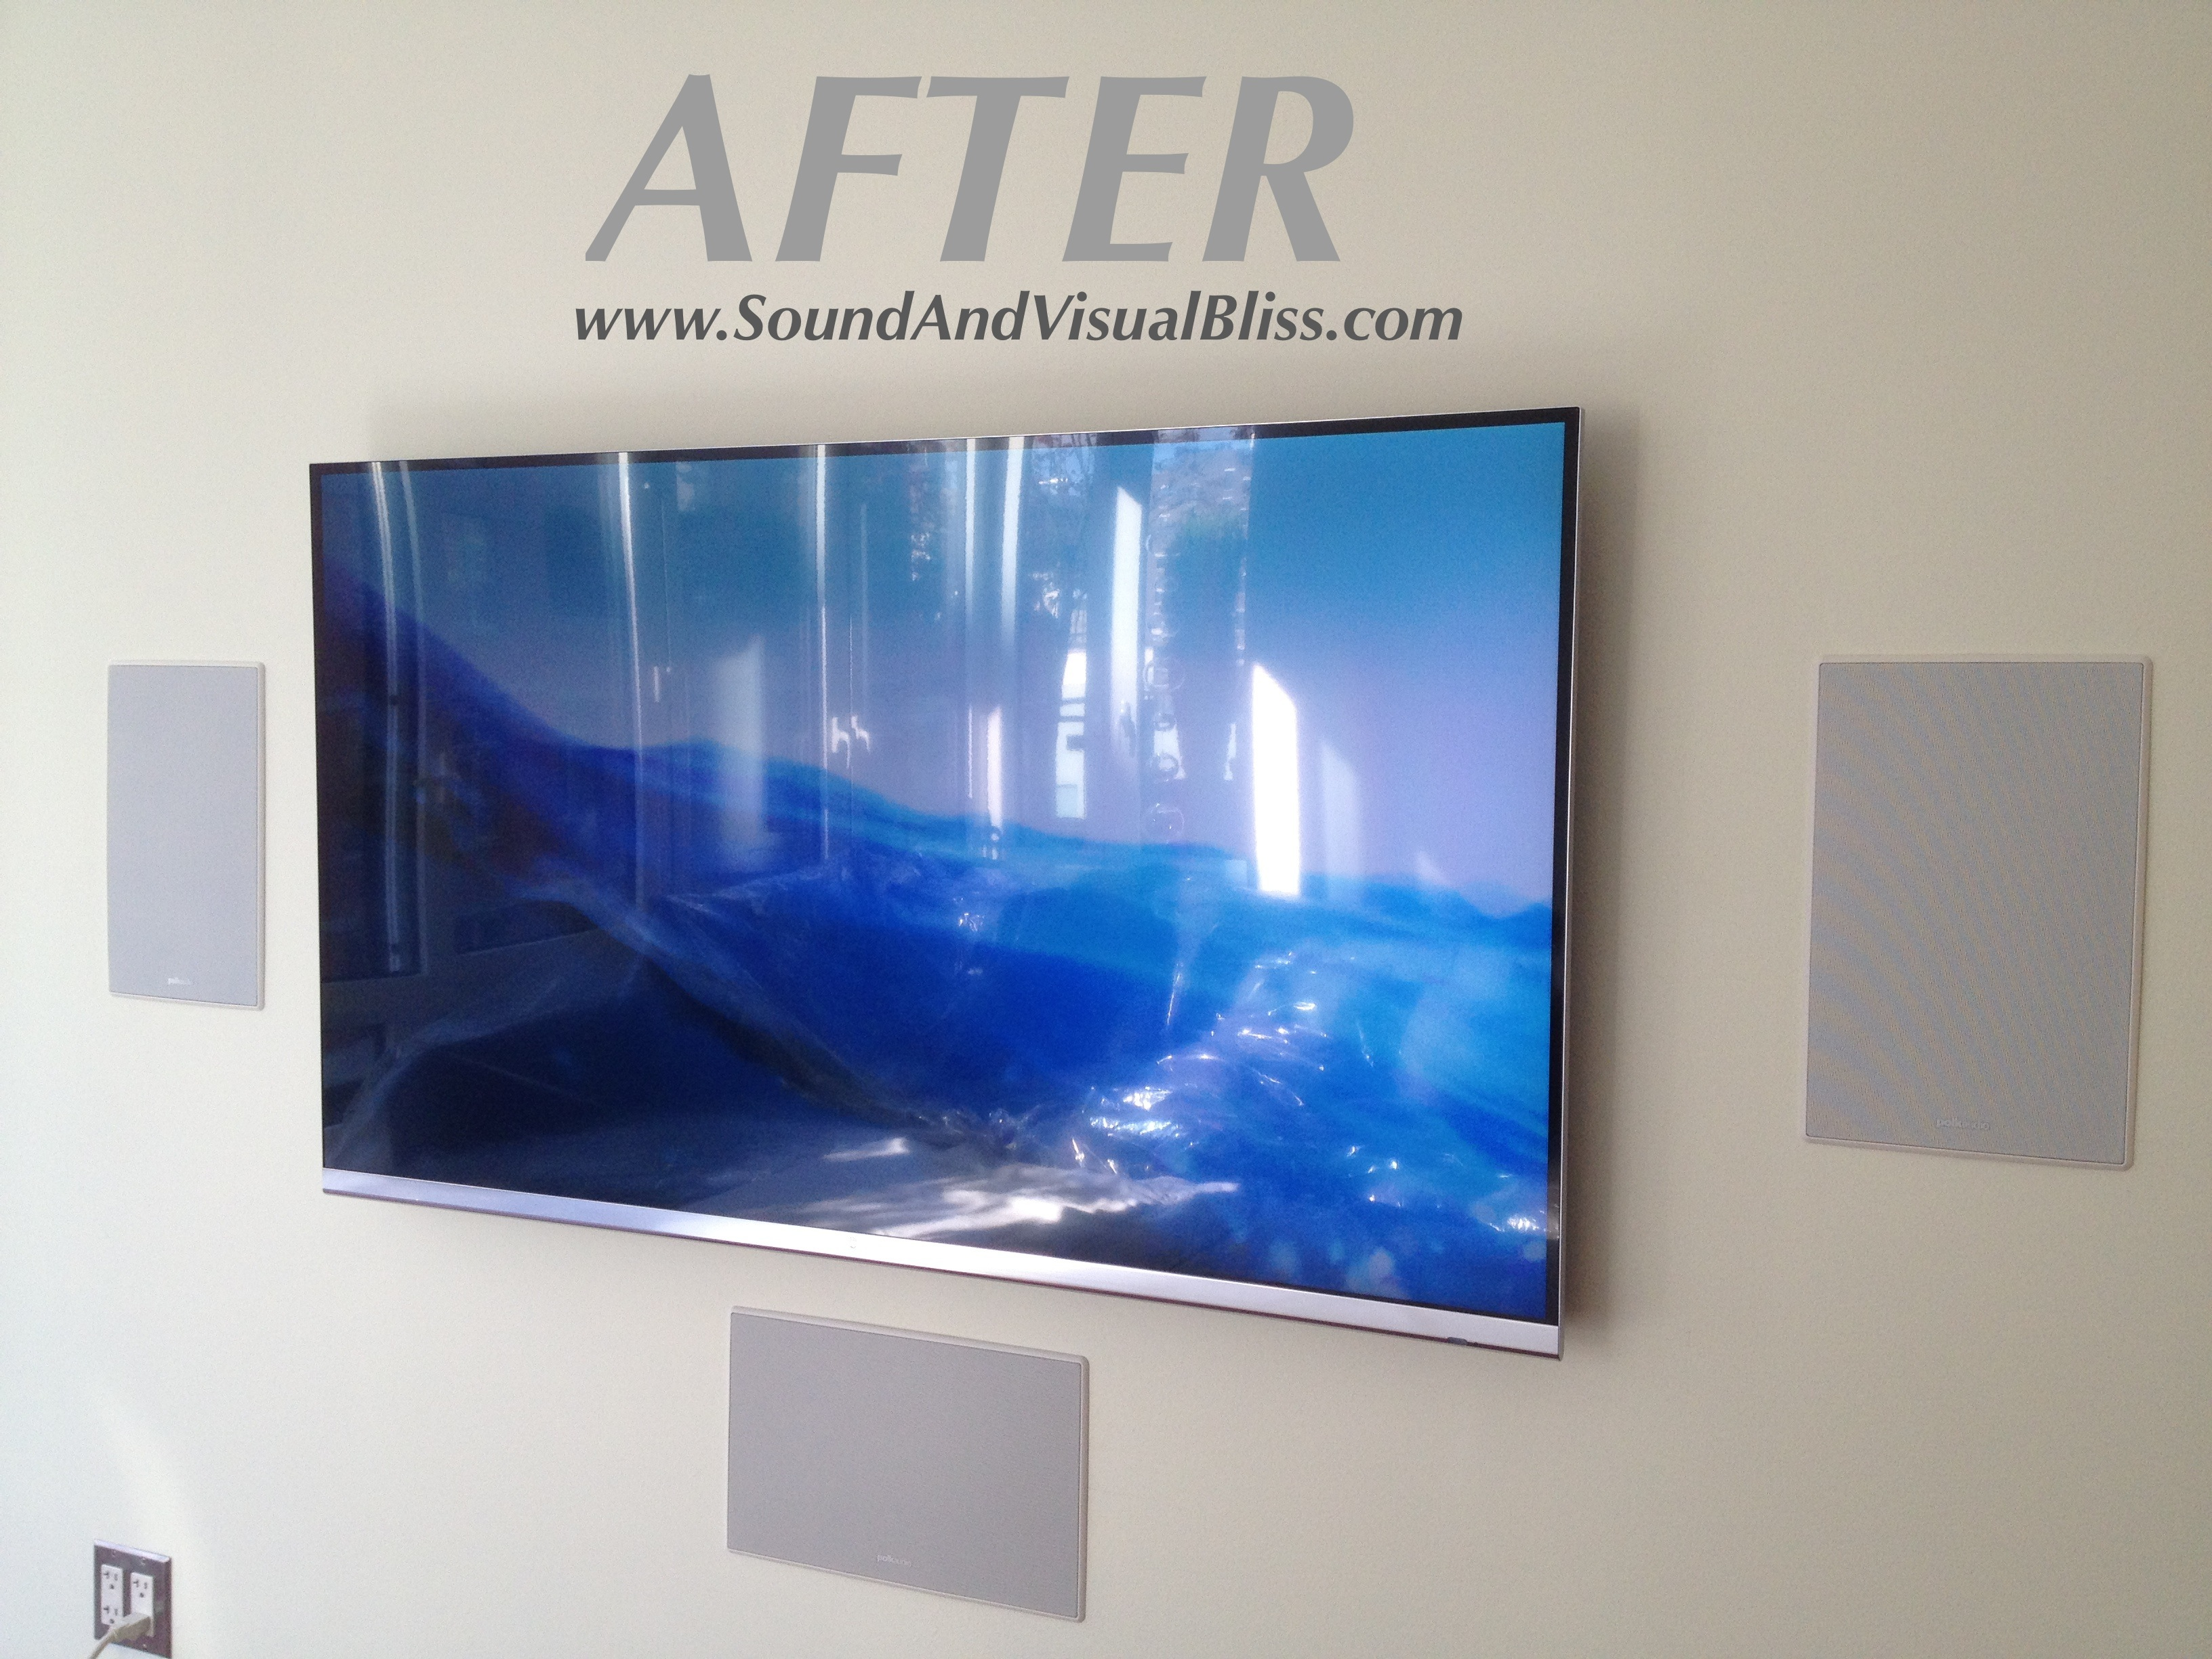 TV WITH IN WALL SPEAKER